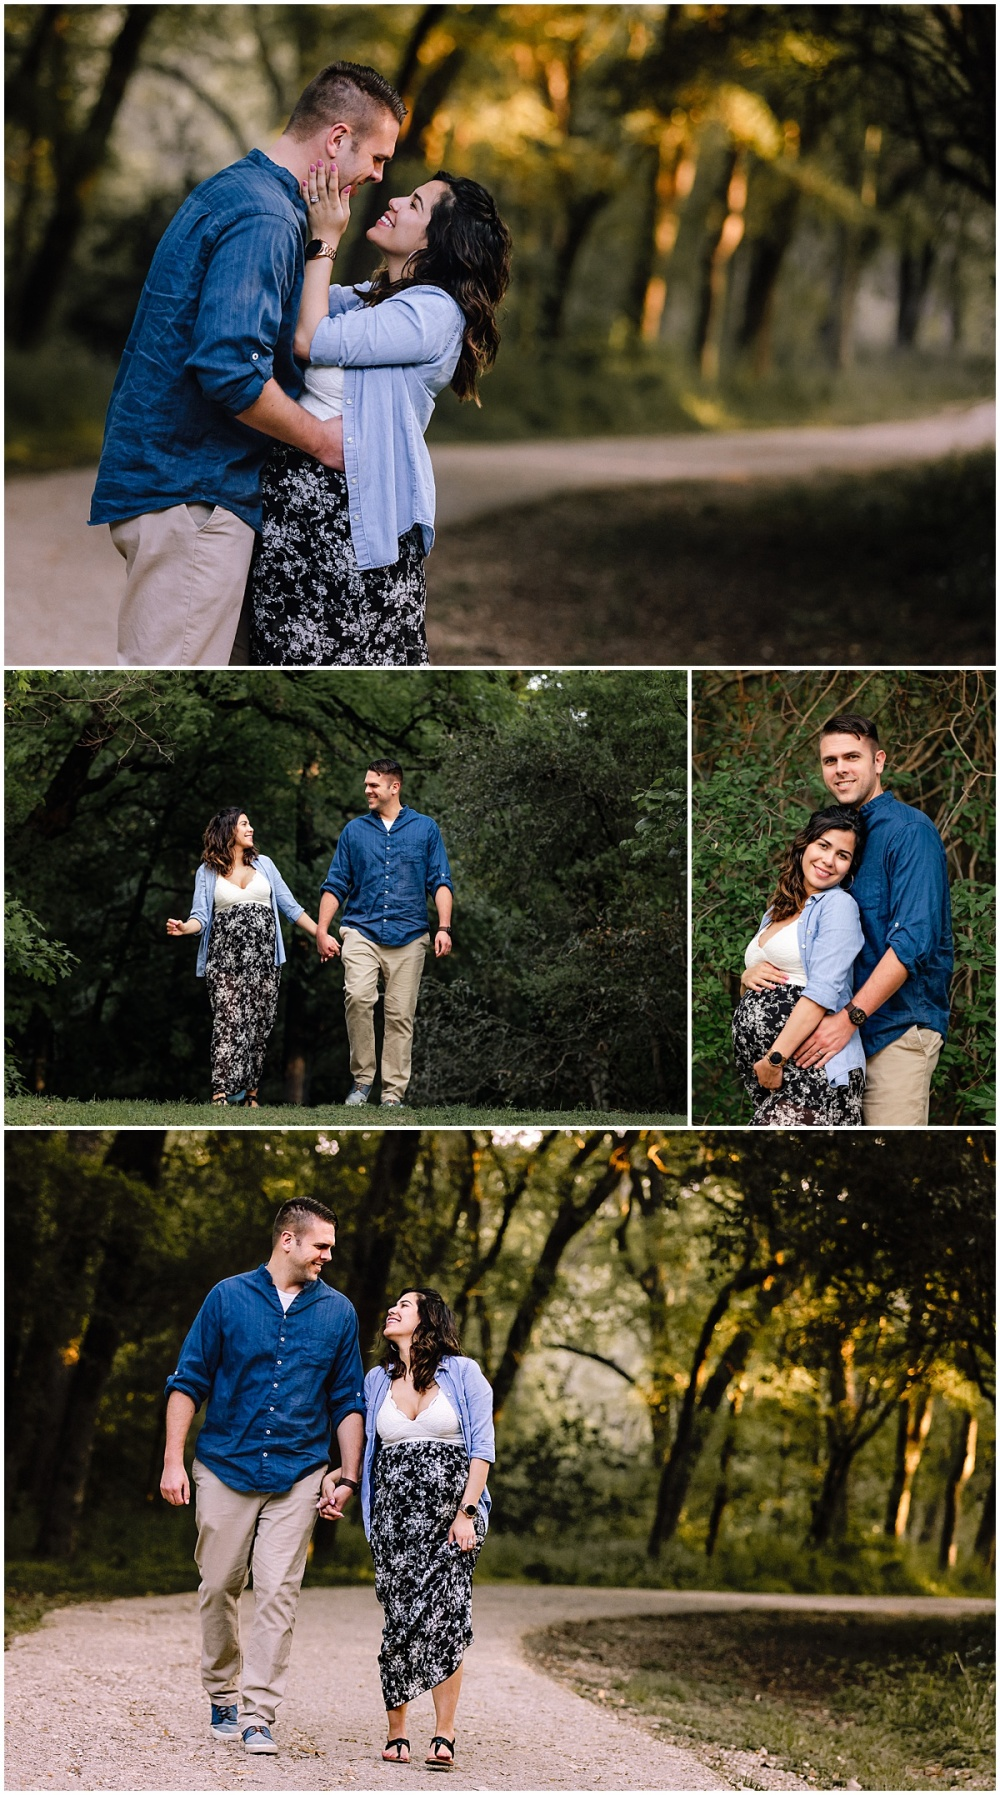 Maternity-Photo-Session-Brakenridge-Park-San-Antonio-Texas-Carly-Barton-Photography_0006.jpg